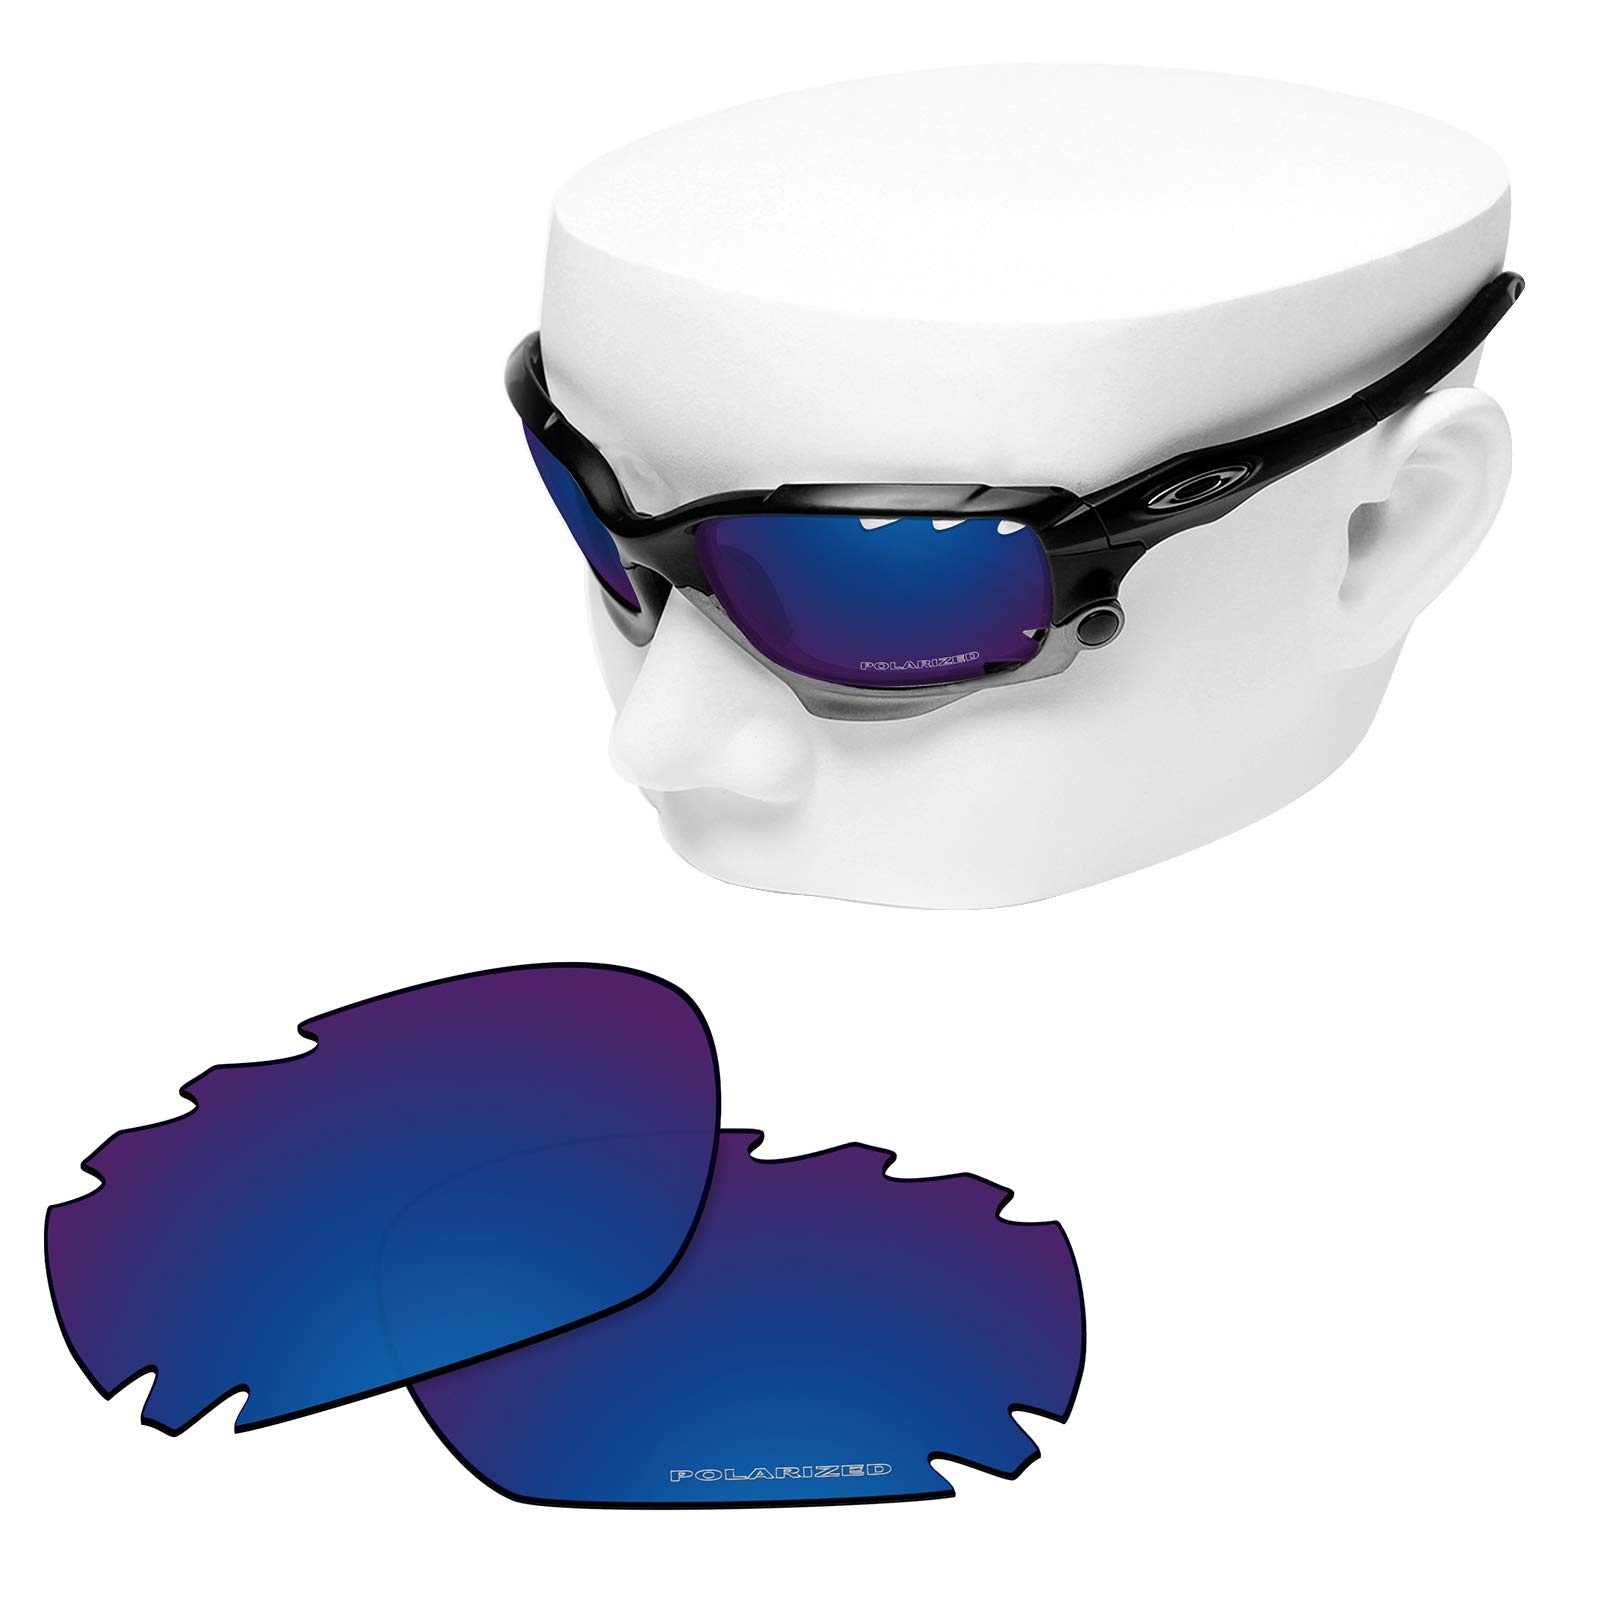 OOWLIT Replacement Sunglass Lenses for Oakley Jawbone Vented/Racing Jacket Vented Sapphire Combine8 Polarized by OOWLIT